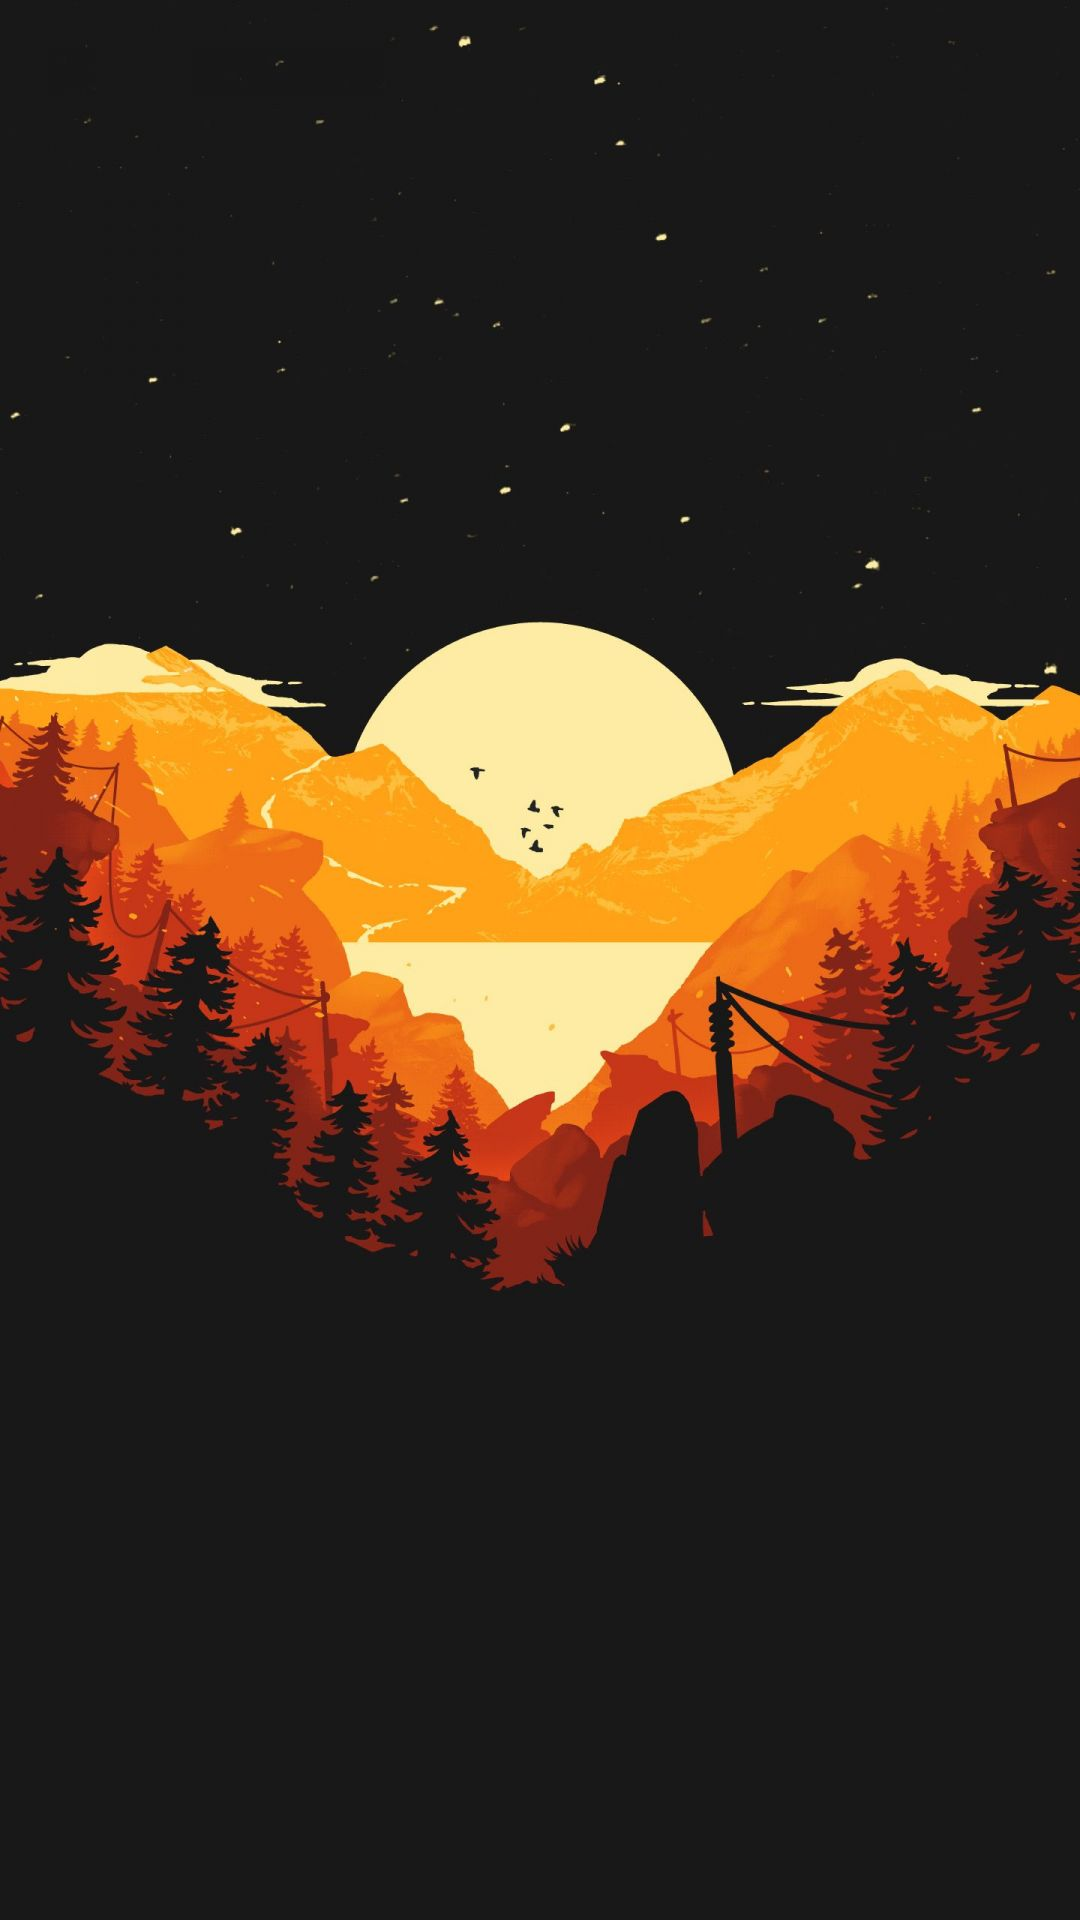 Android Iphone Desktop Hd Backgrounds Wallpapers Hd Minimalist Landscape Phone Background 1080x1920 Wallpaper Teahub Io